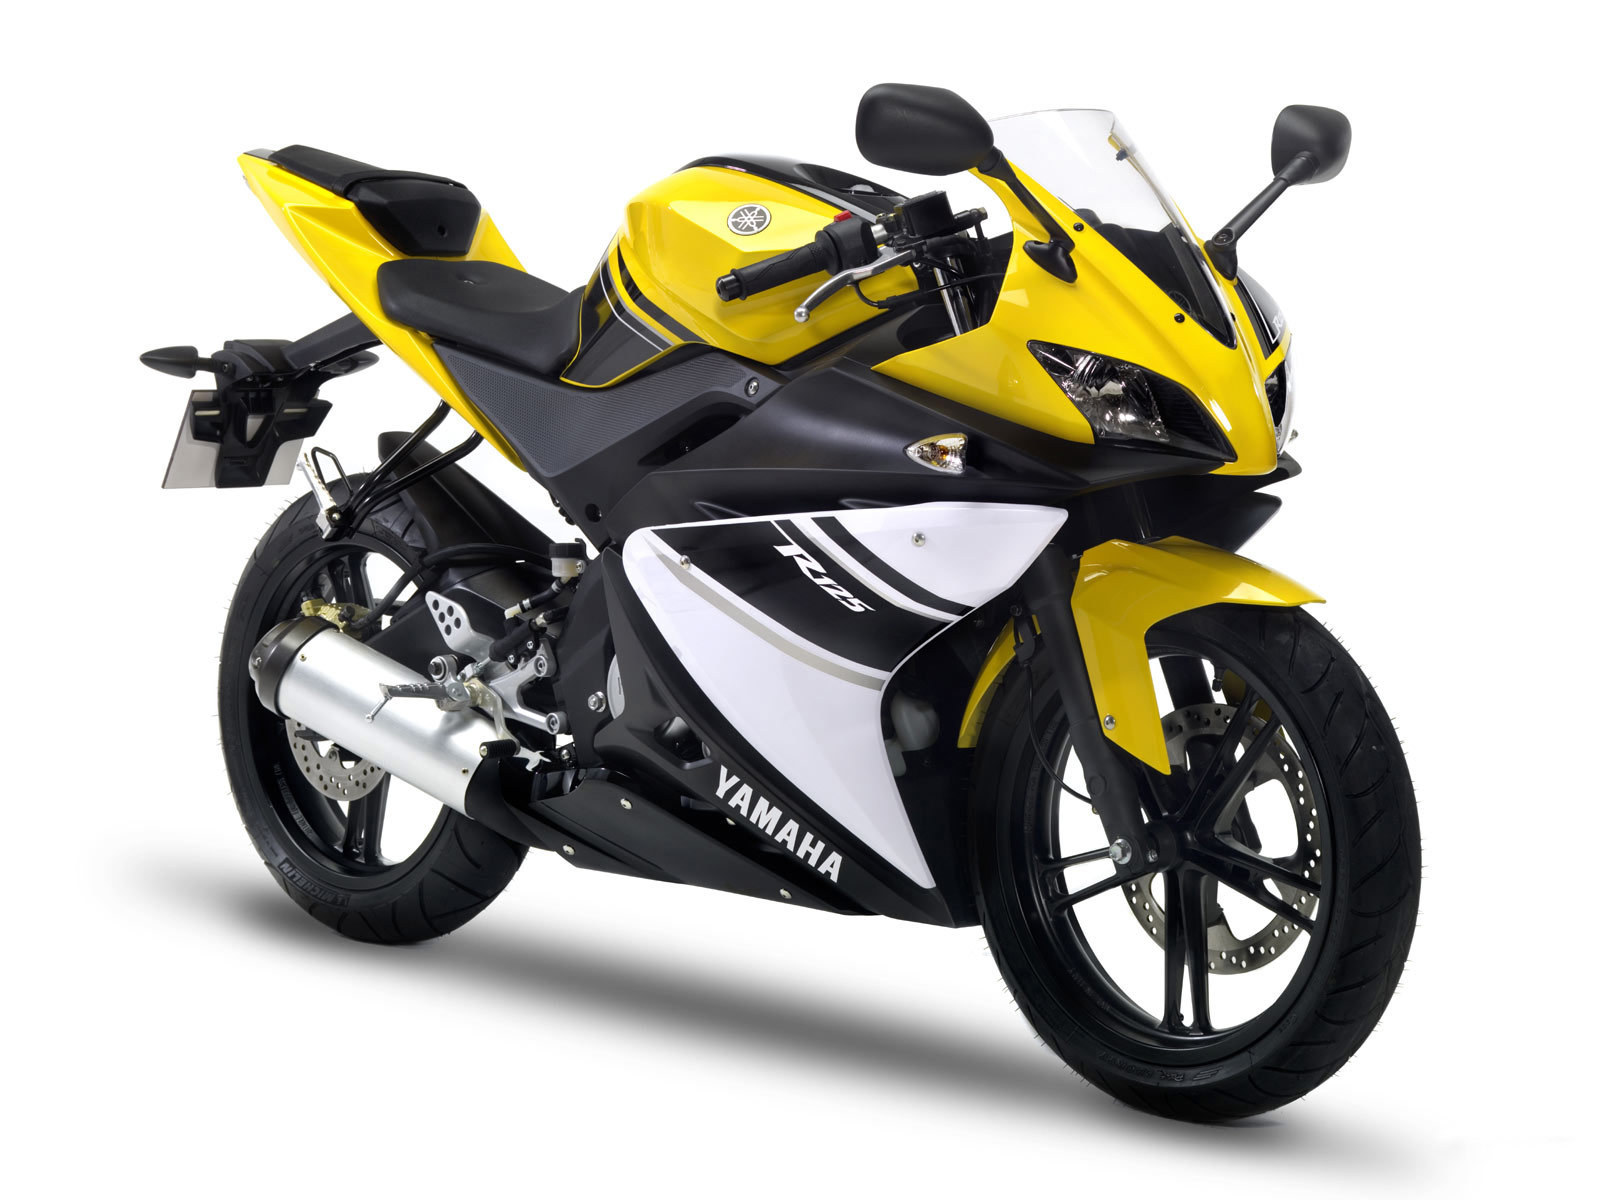 motorcycles images yamaha yzf r125 hd wallpaper and. Black Bedroom Furniture Sets. Home Design Ideas